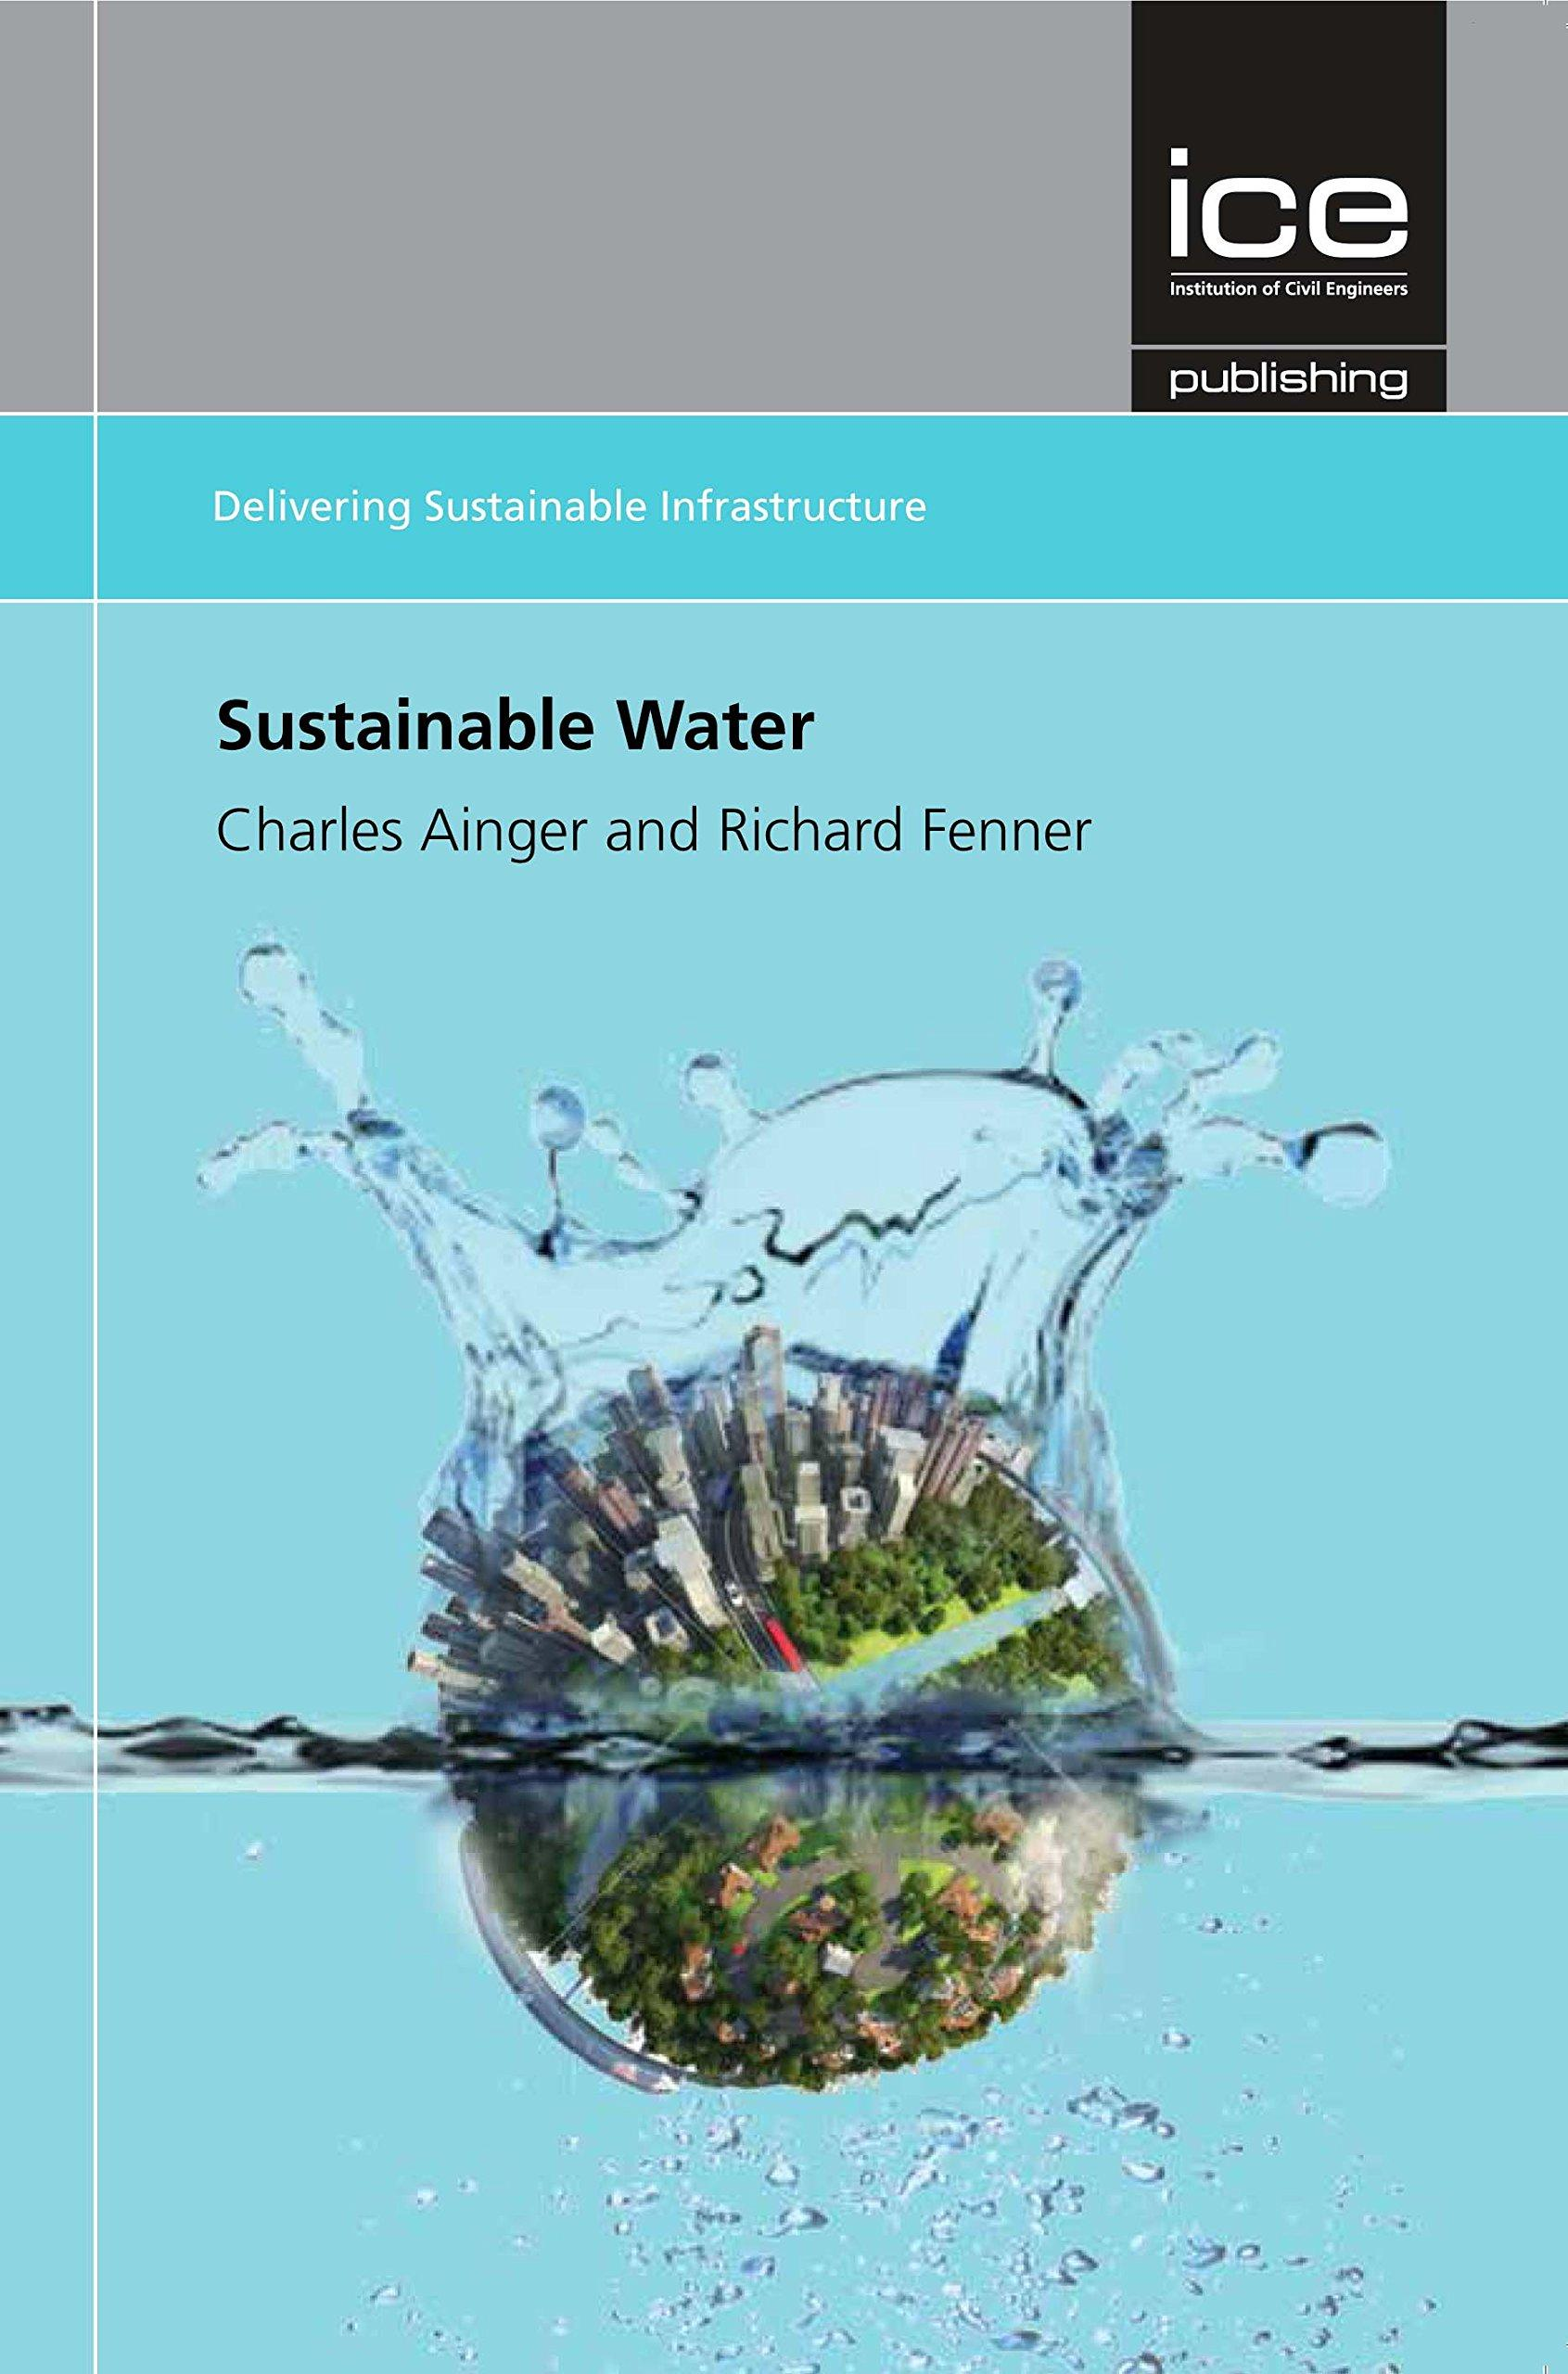 New book on Sustainable Water